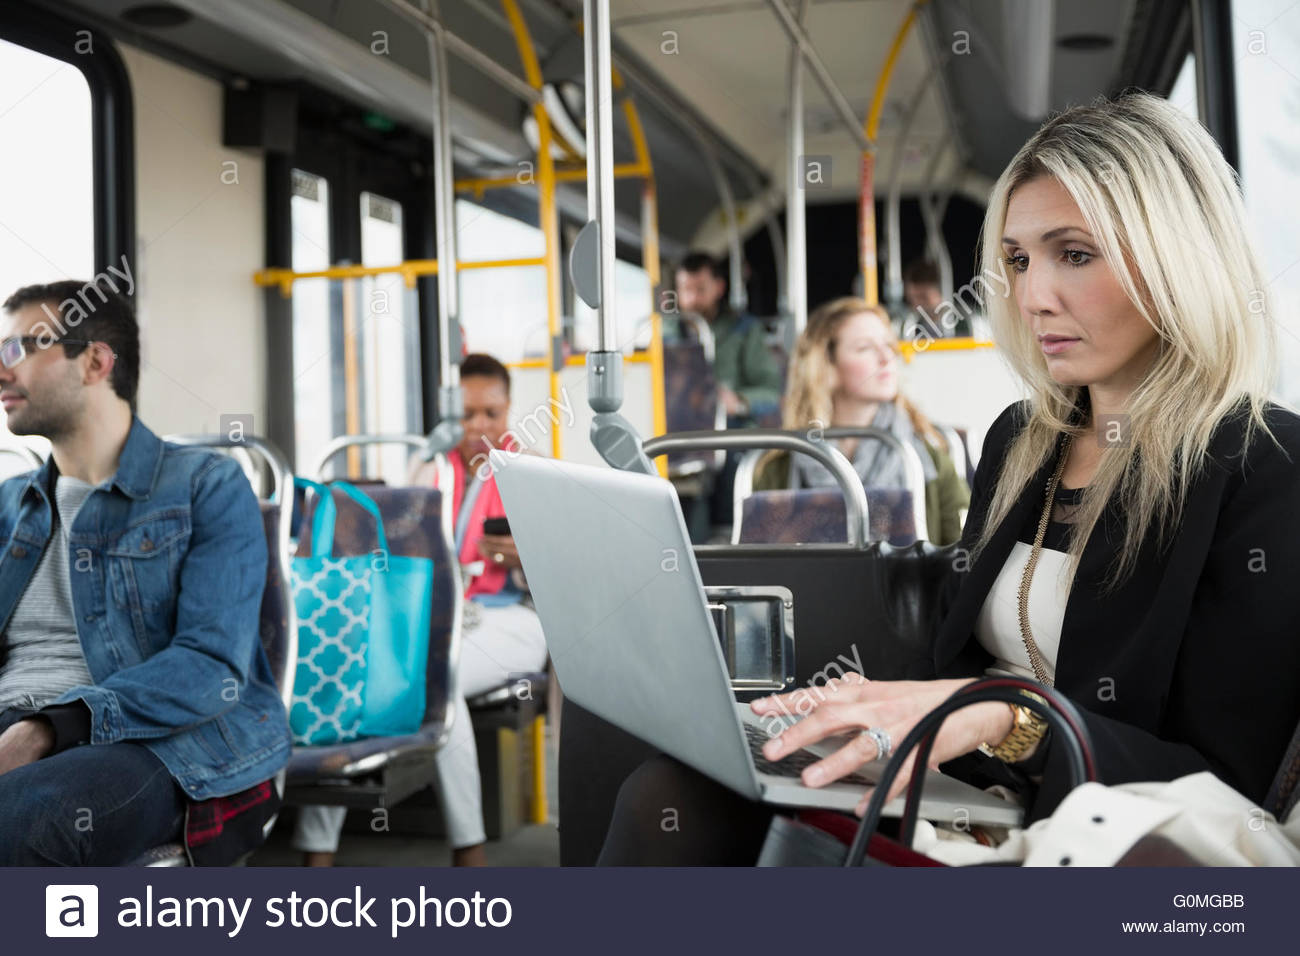 Businesswoman using laptop on bus - Stock Image